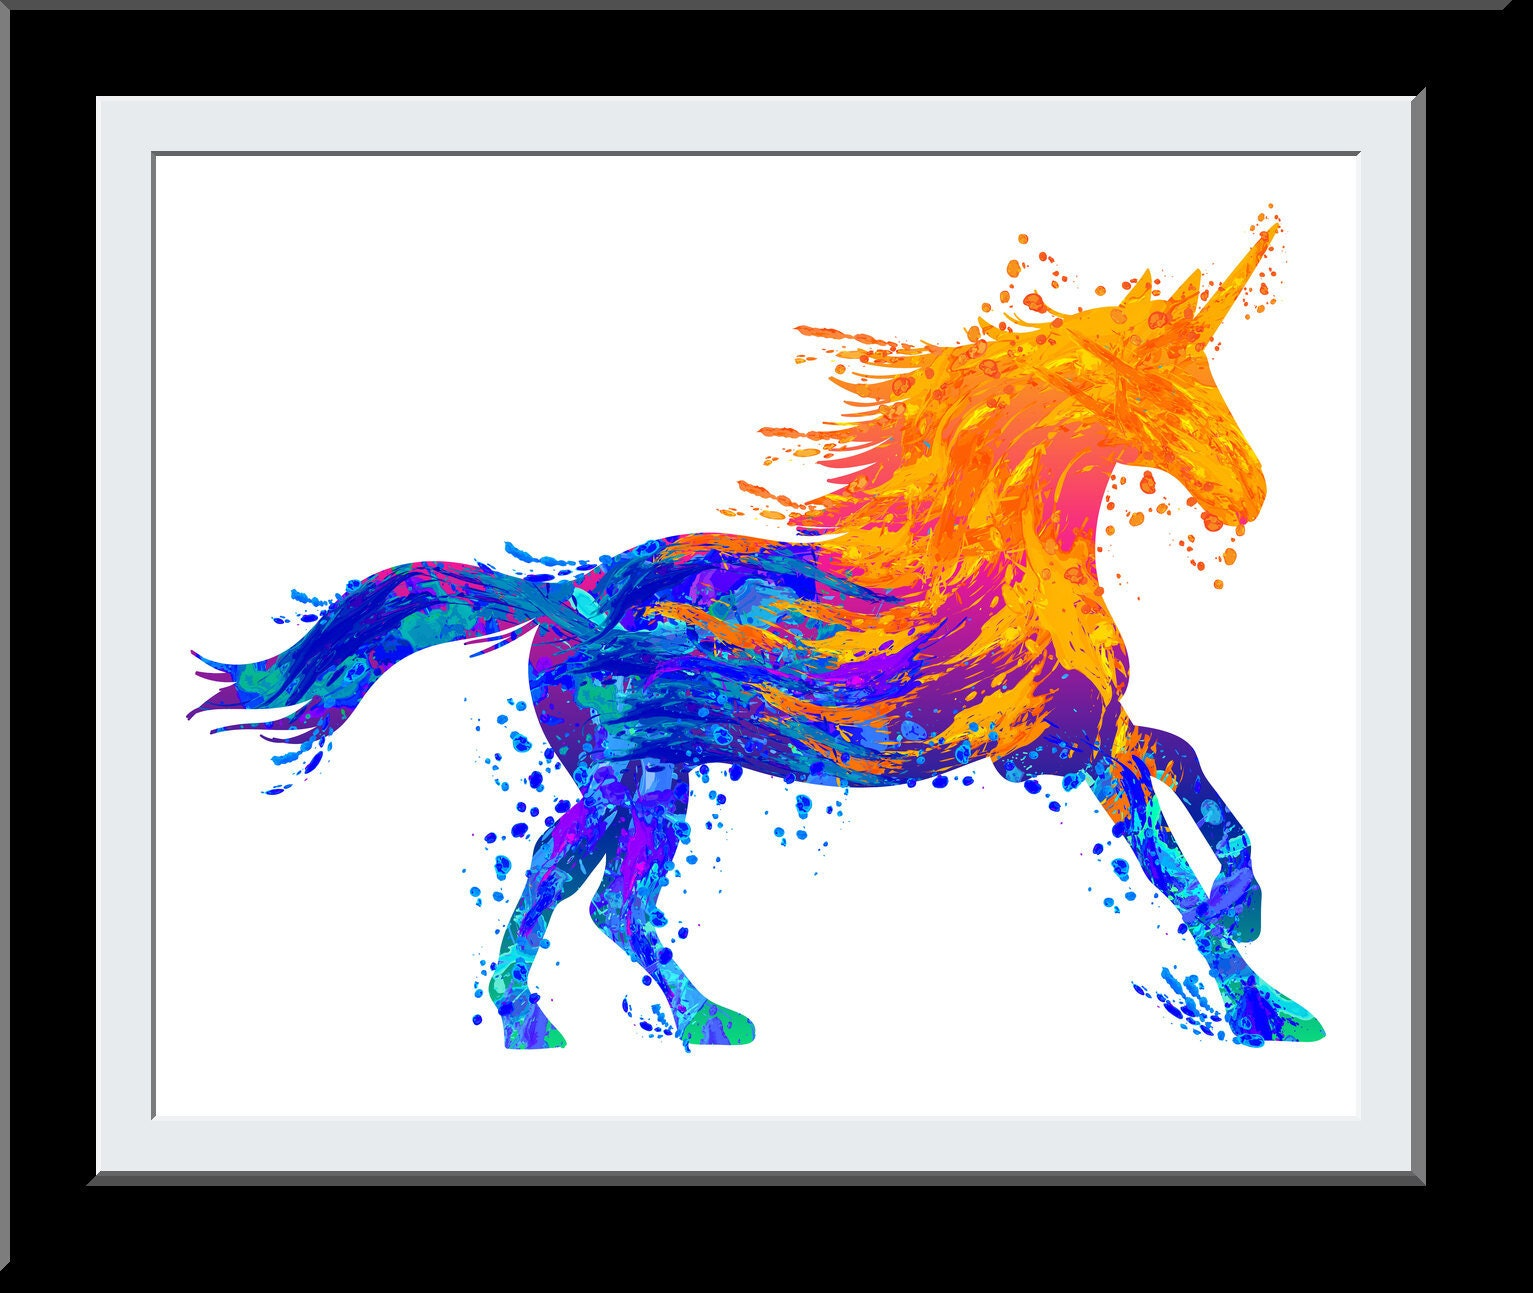 Beautiful Bedroom Unicorn Décor - Gift for Daughter - Unicorn WaterColor Print - Fire+Water Elemental Digital Painting - Gift for Girls